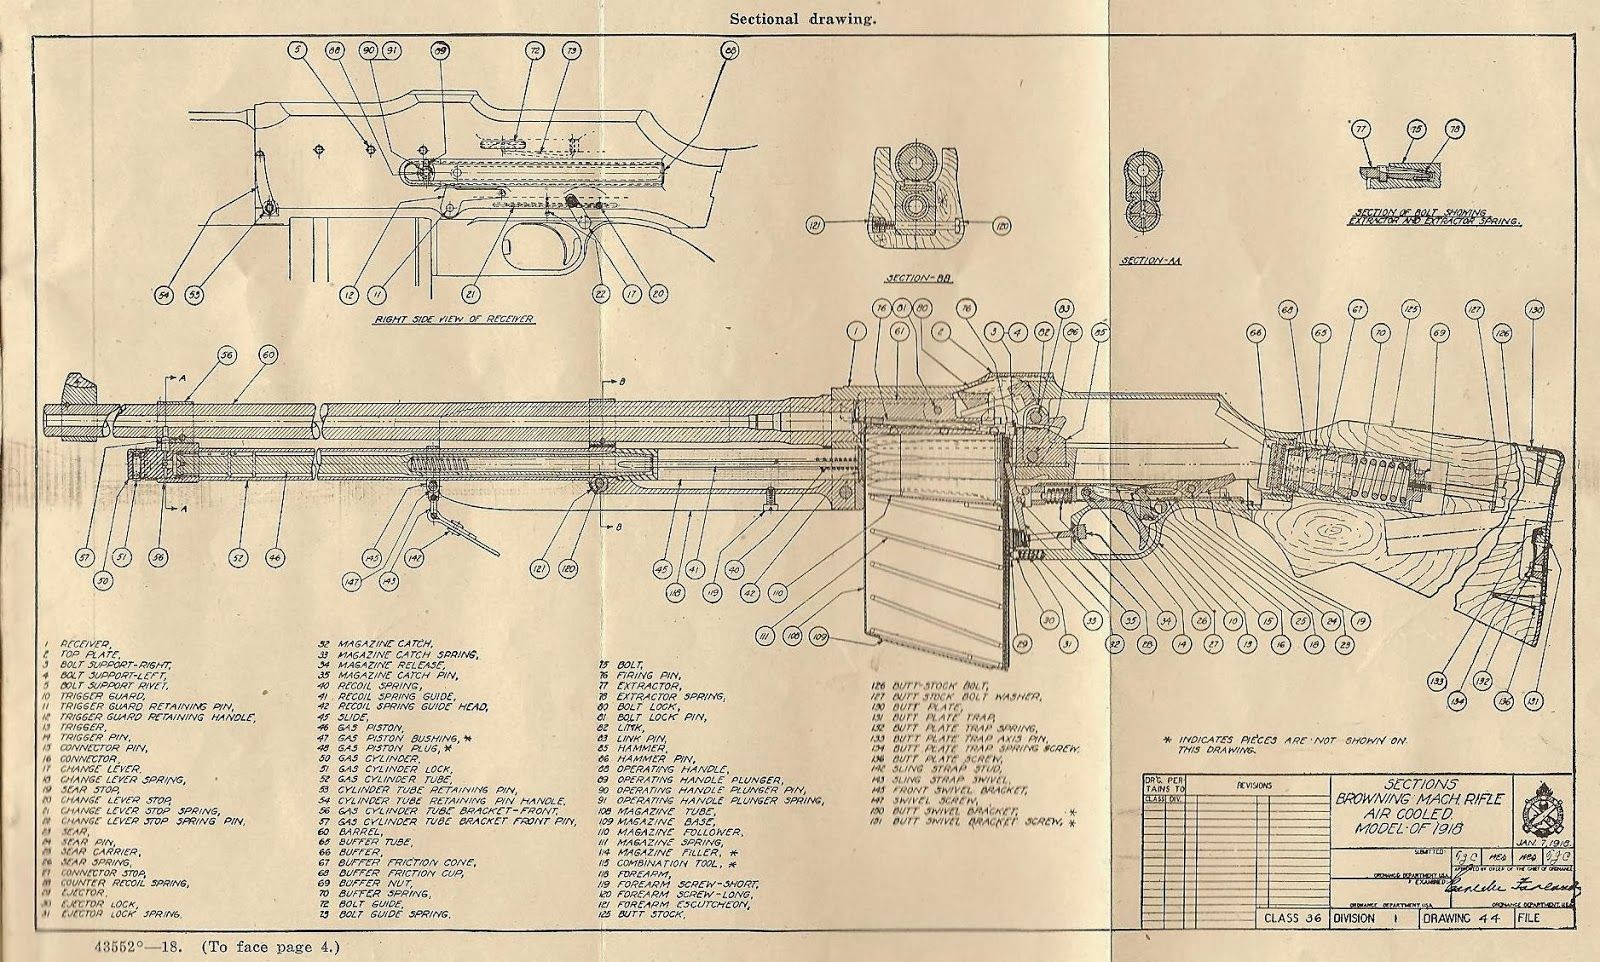 Browning automatic rifle diagram bing images vintage firearms browning automatic rifle diagram bing images ccuart Images